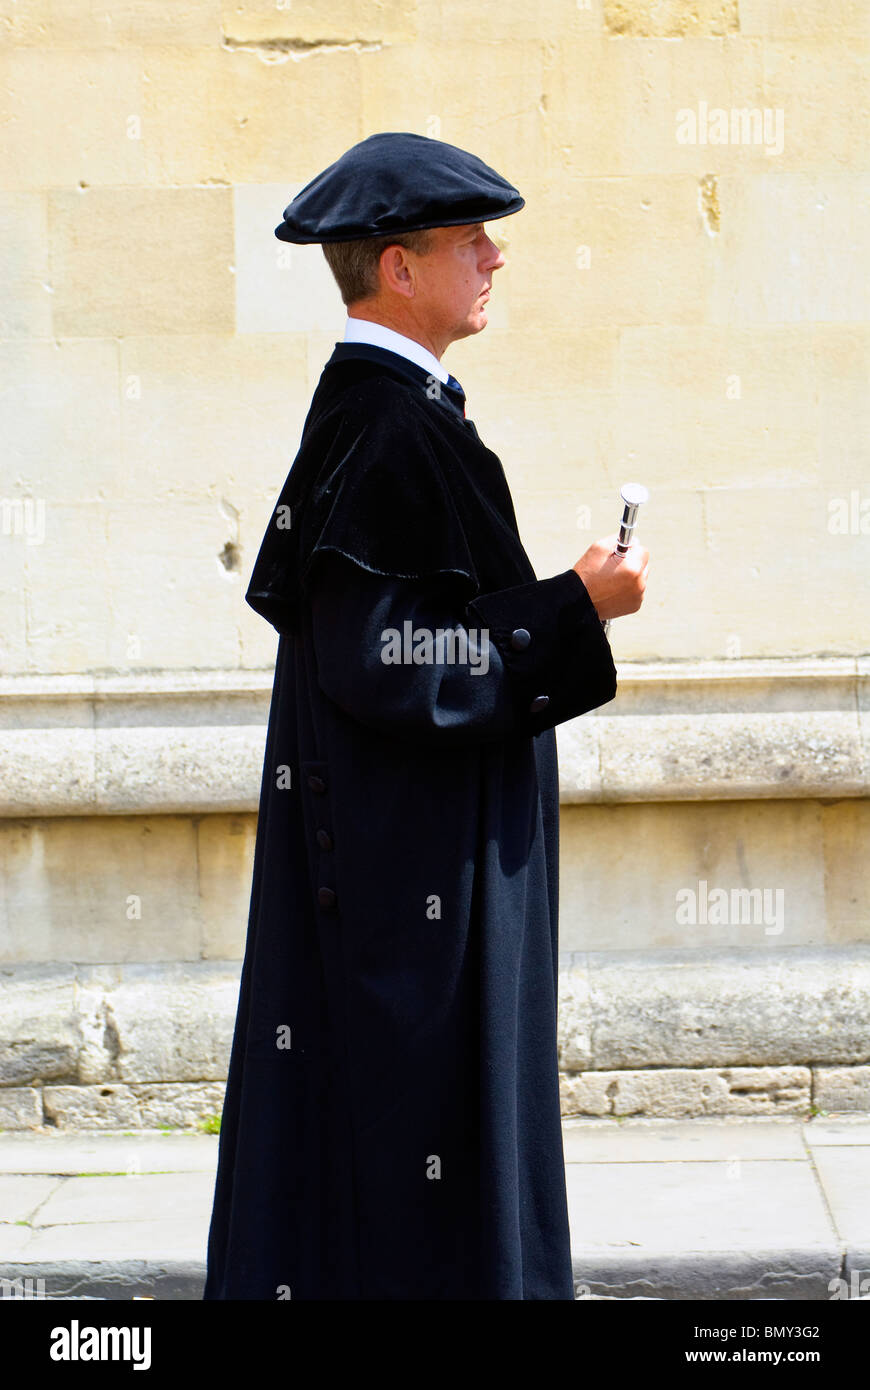 University of Oxford Encaenia Procession 2010 - The University Marshal. Stock Photo